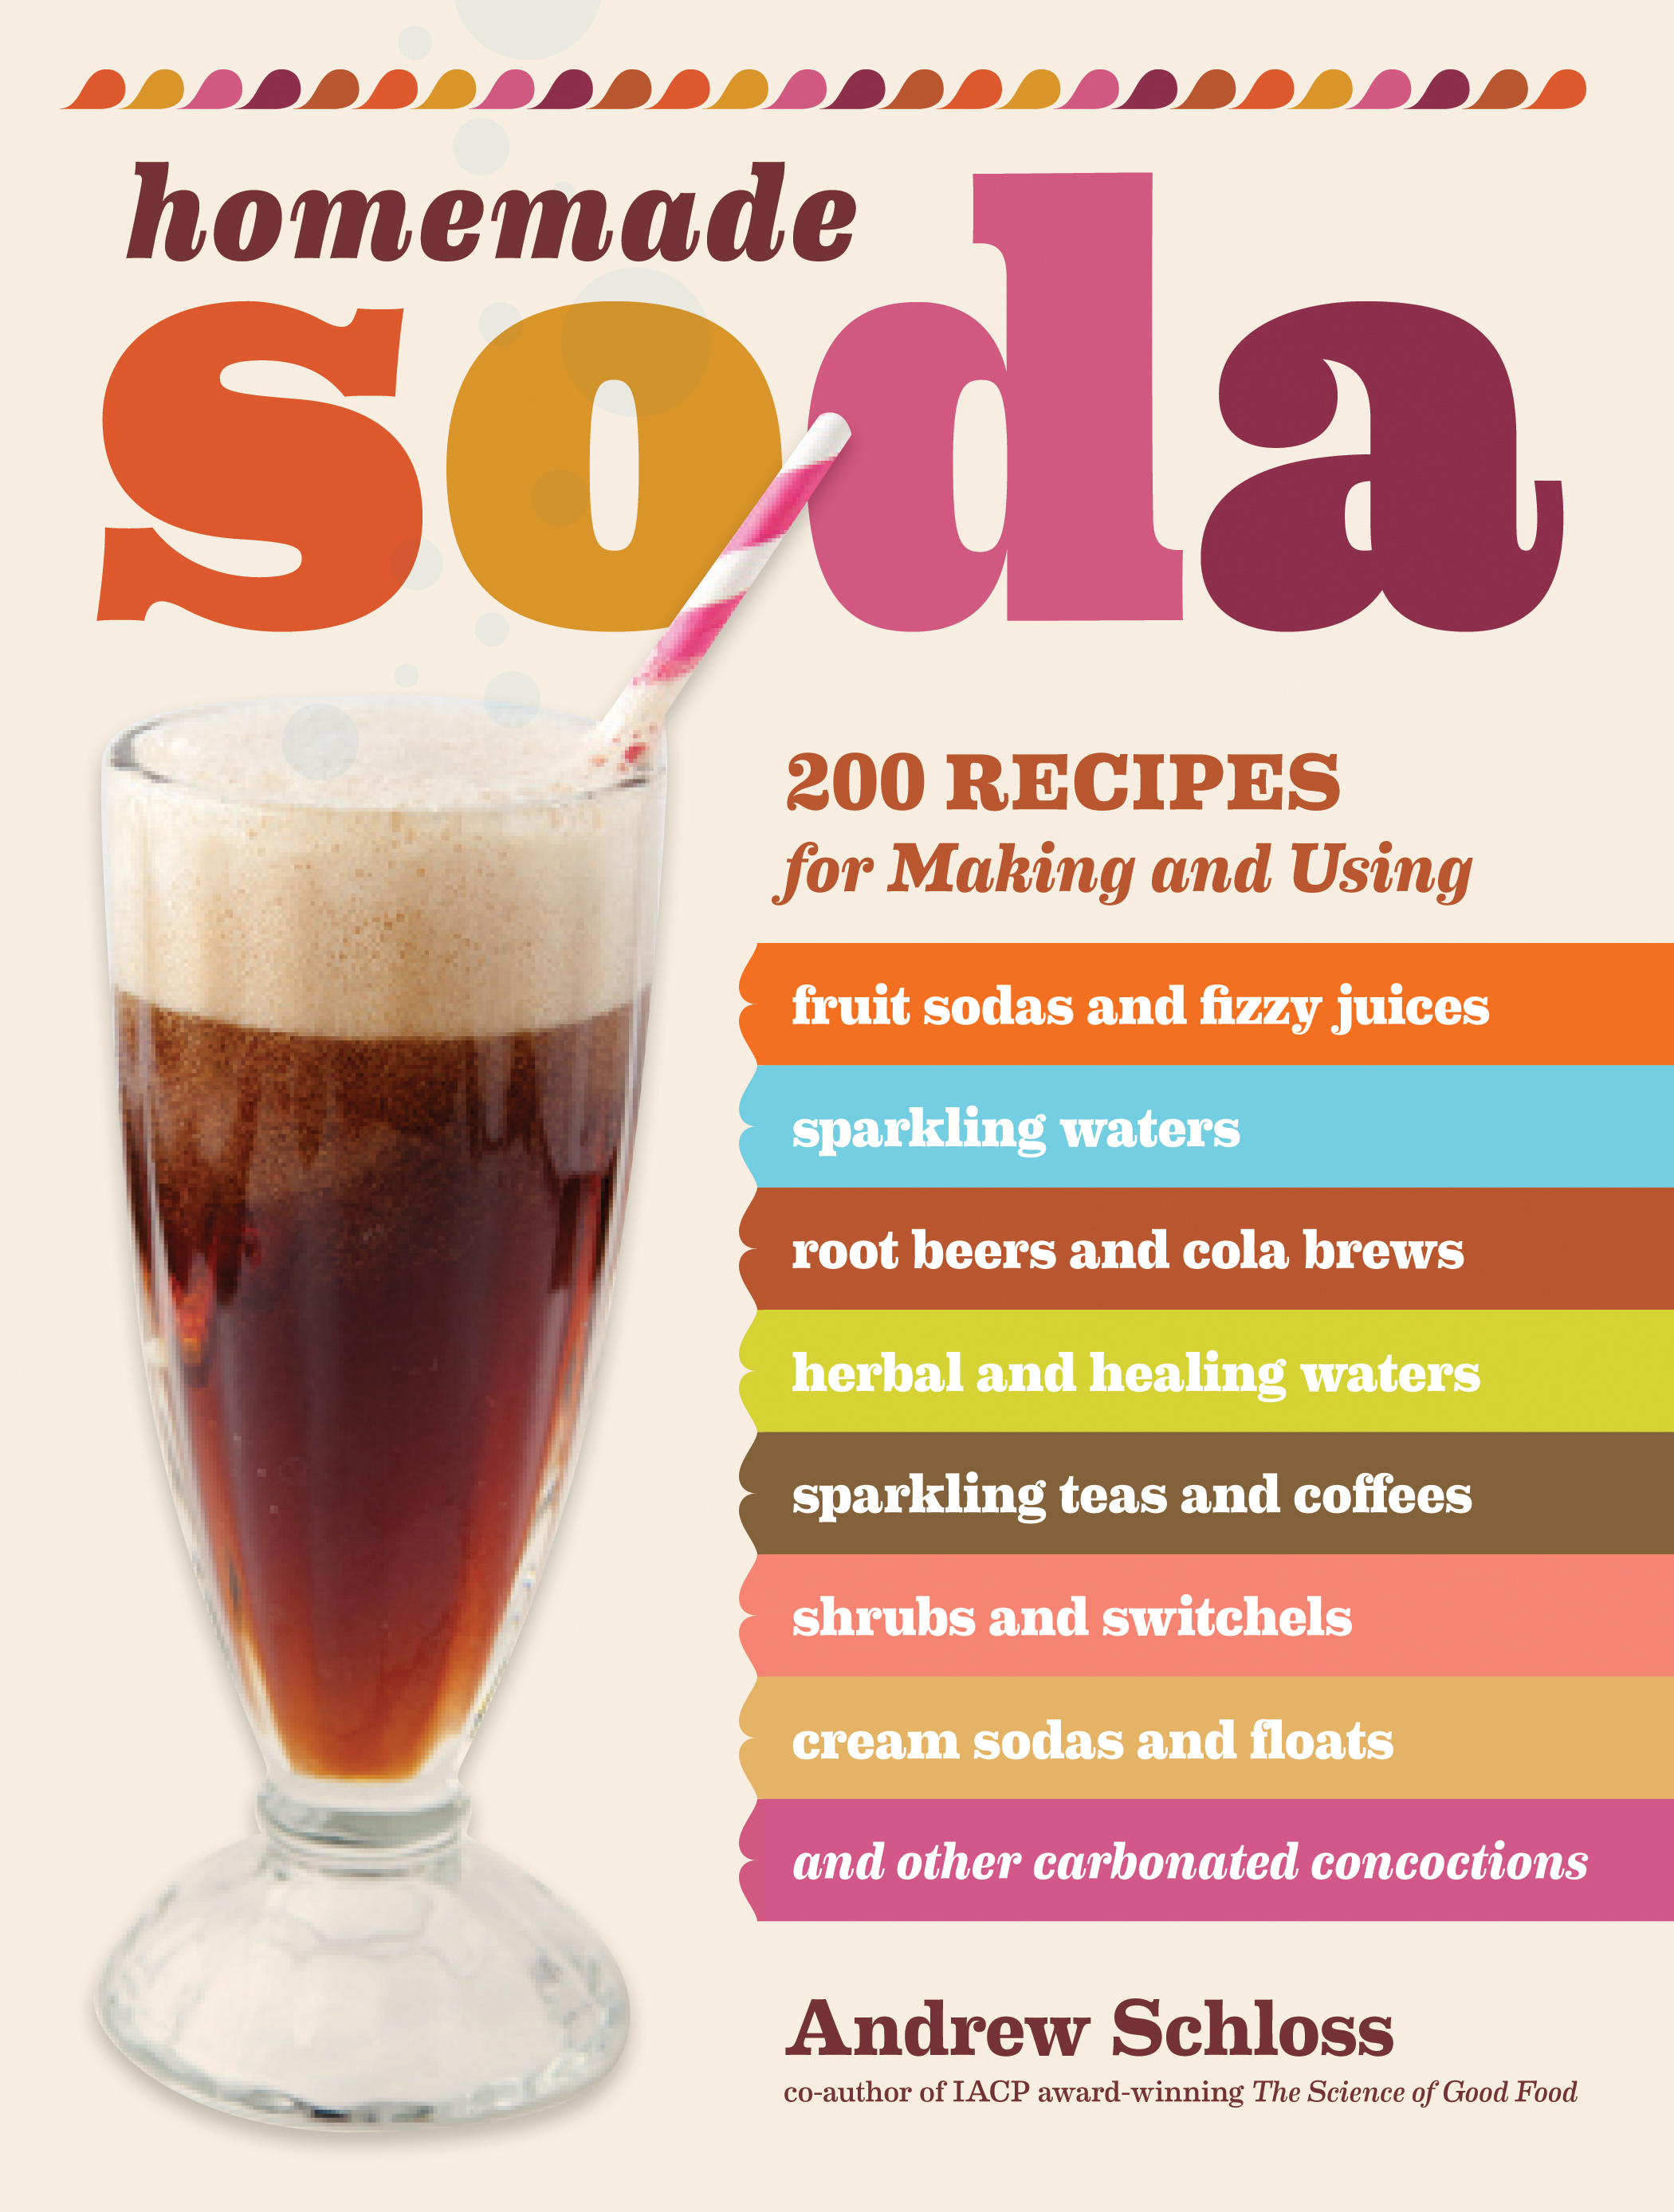 Homemade Soda 200 Recipes for Making & Using Fruit Sodas & Fizzy Juices, Sparkling Waters, Root Beers & Cola Brews, Herbal & Healing Waters, Sparkling Teas & Coffees, Shrubs & Switchels, Cream Sodas & Floats, & Other Carbonated Concoctions - Andrew Schloss